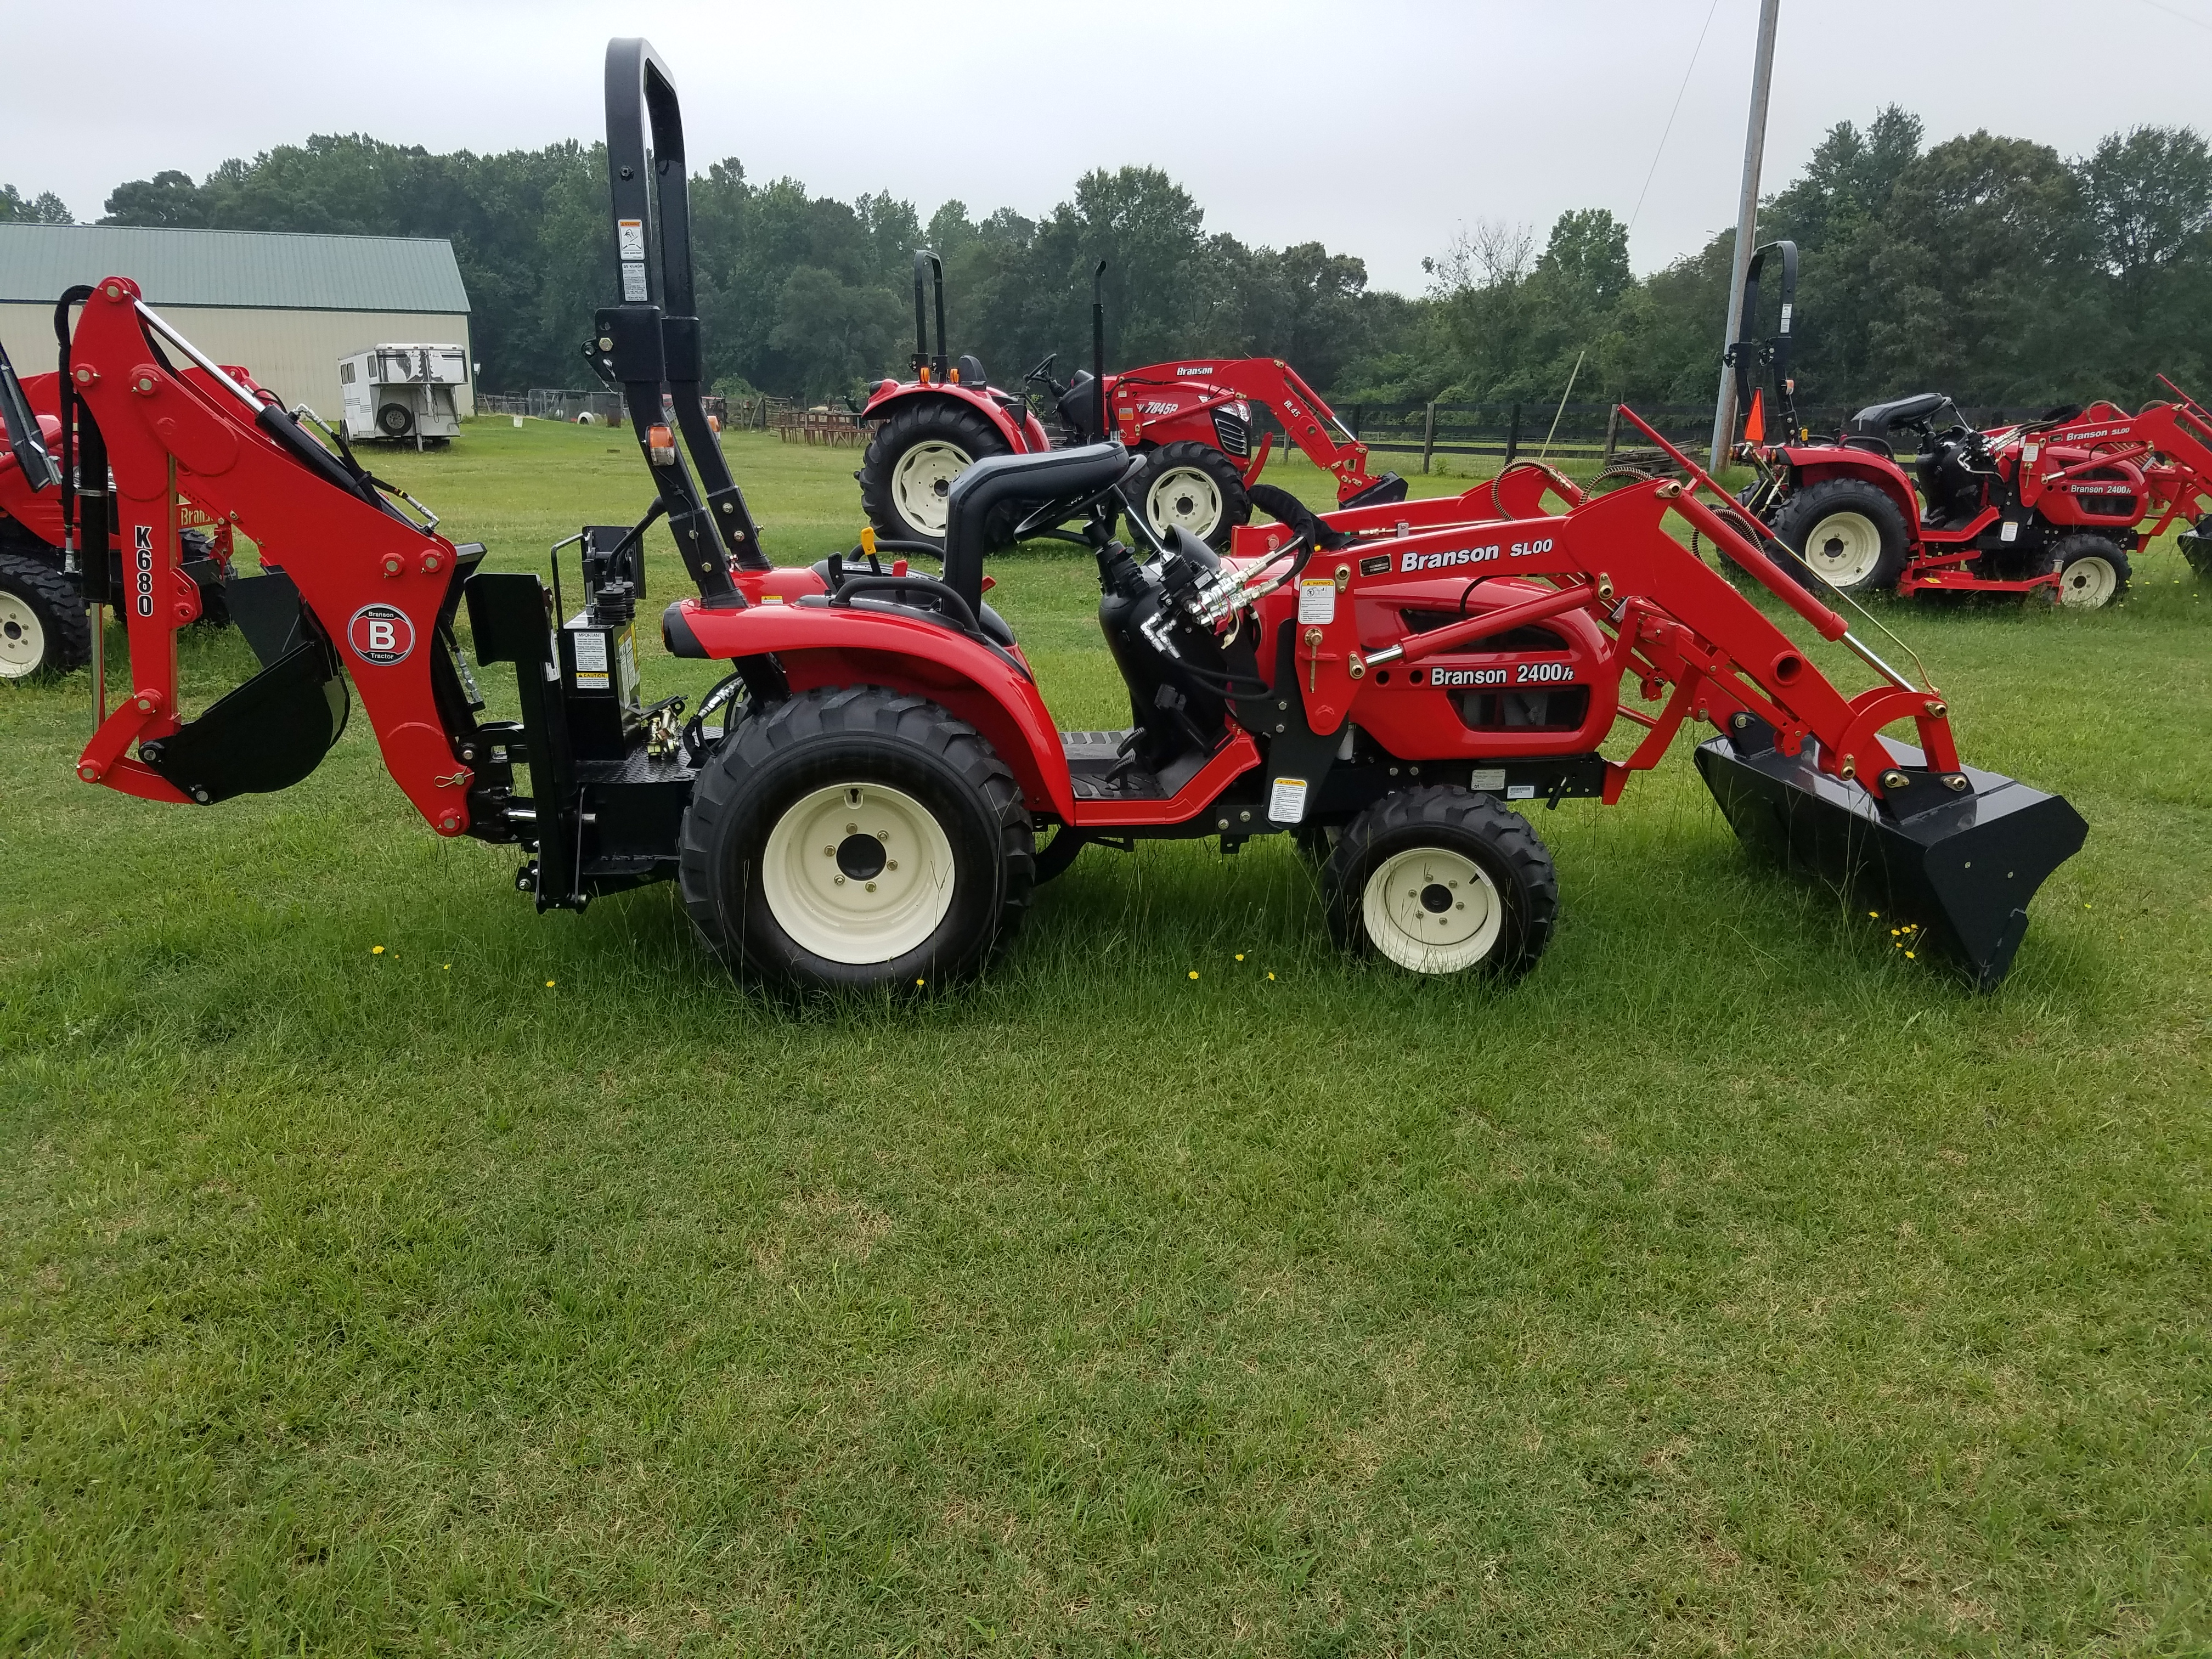 Branson 2400H: High Quality Tractor Parts | Expert Tractor Service ...